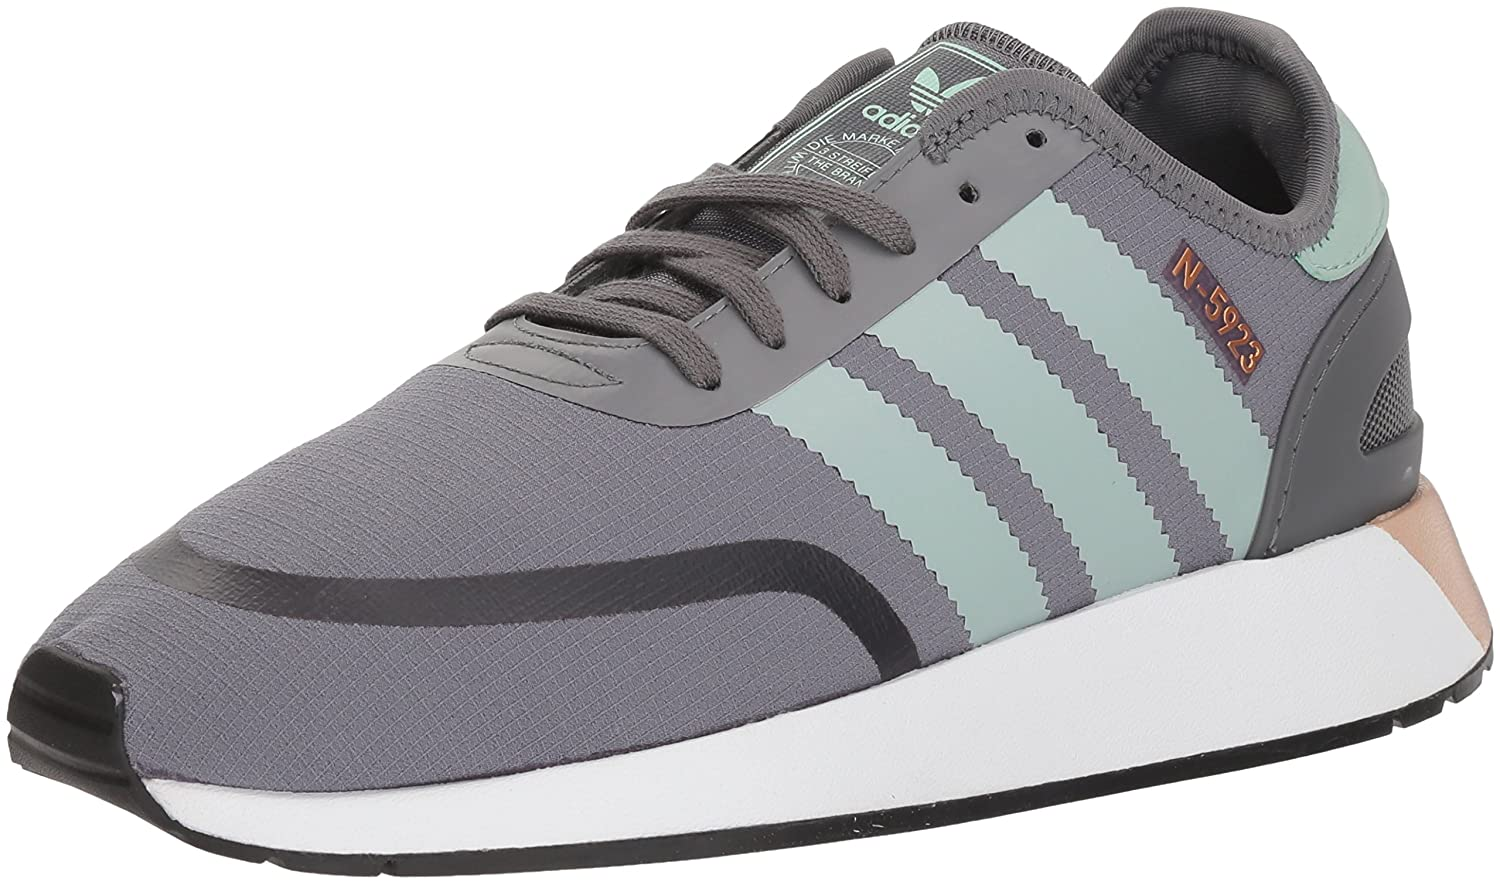 Adidas Women's Iniki Runner CLS W B0725QCTCW 5 B(M) US|Grey Four/Ash Green/White